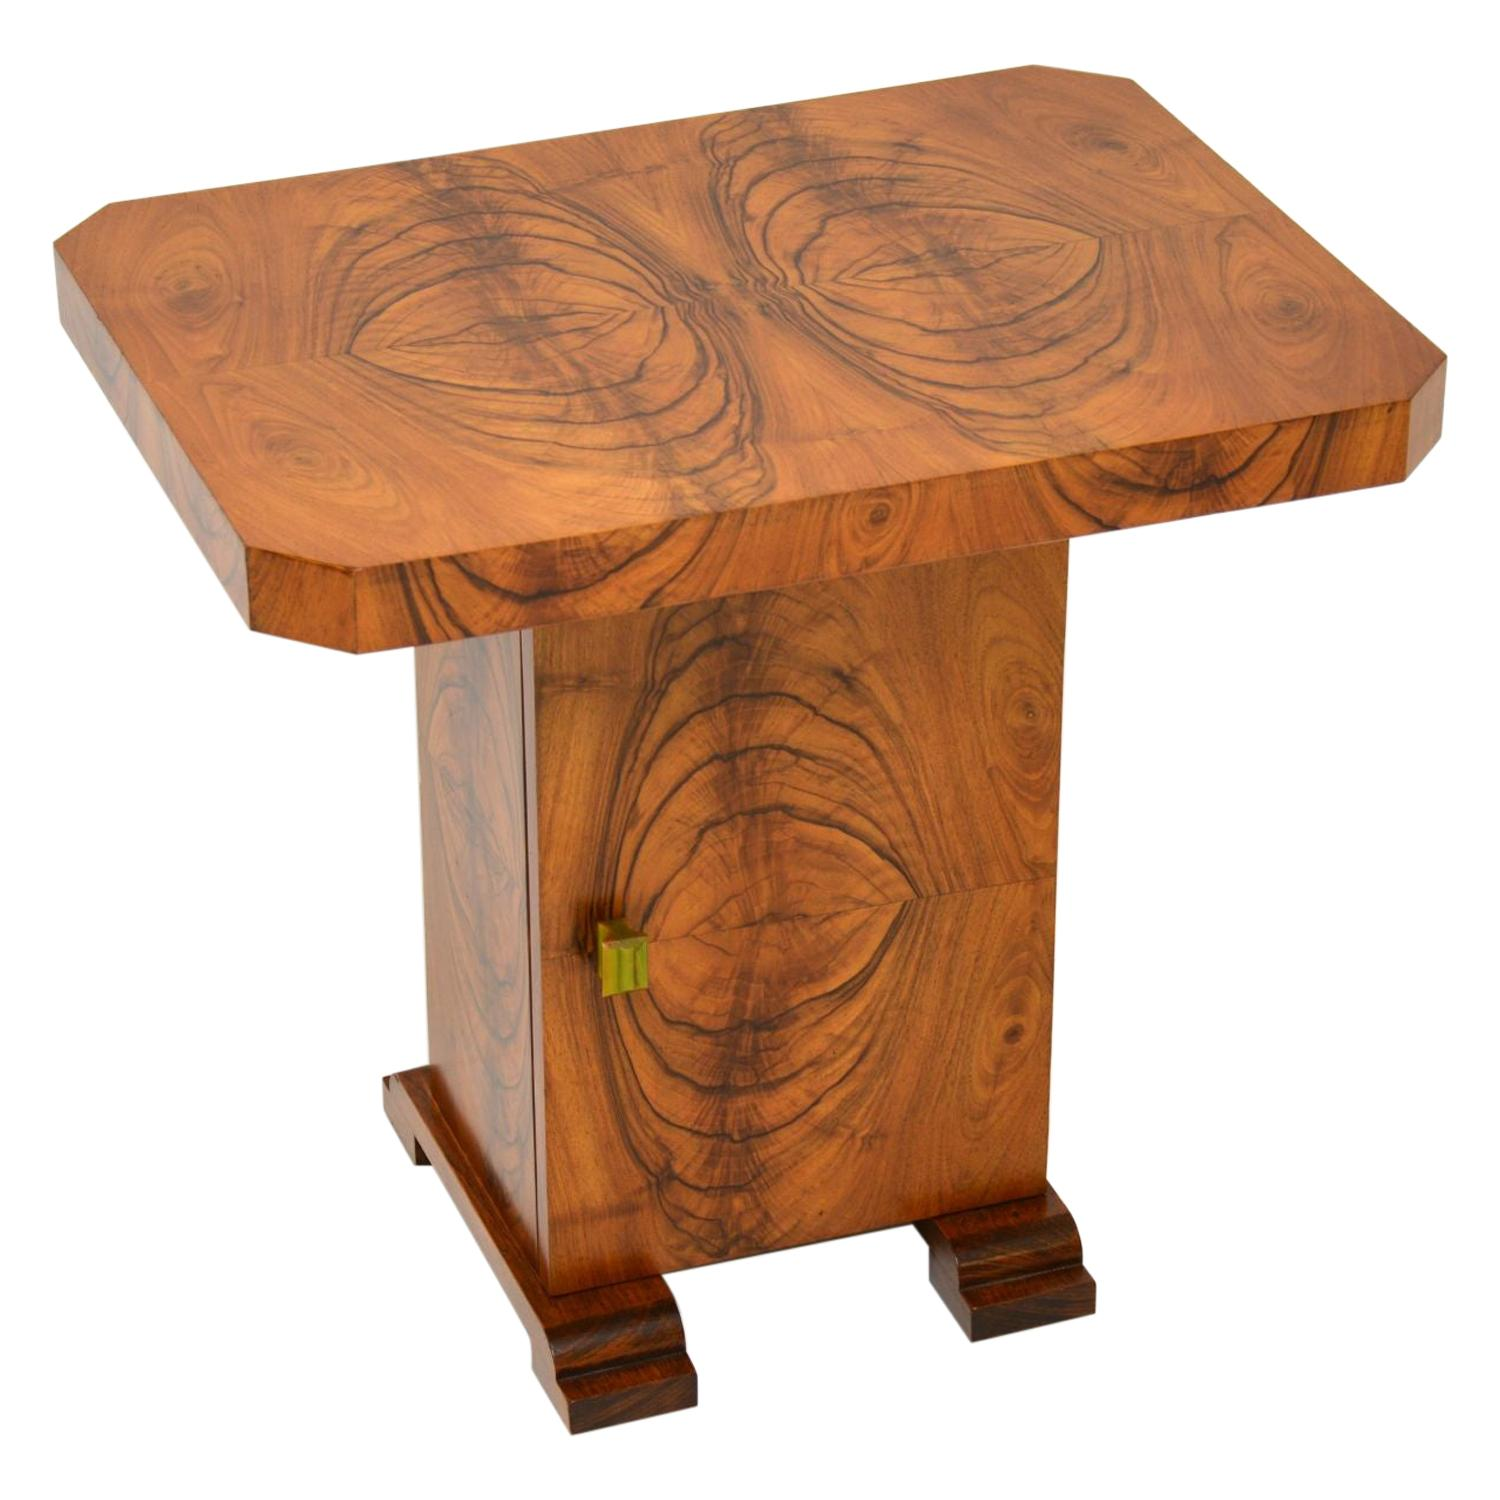 Art Deco Figured Walnut Occasional Coffee / Side Table